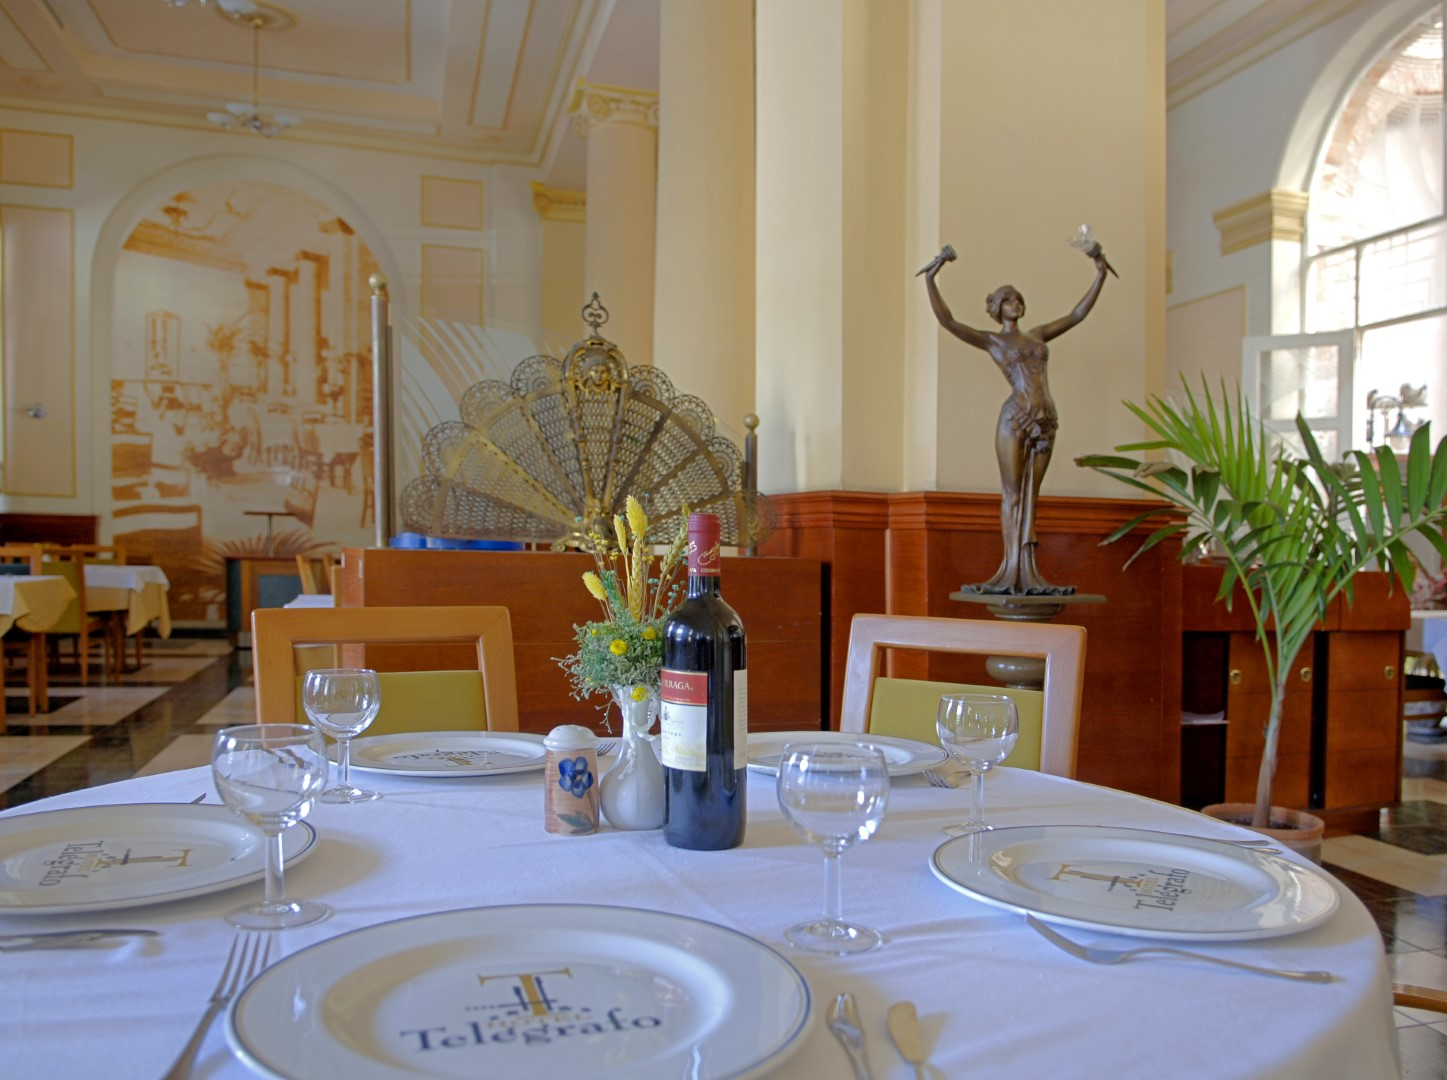 Restaurant of the Hotel Telegrafo in Havana, Cuba